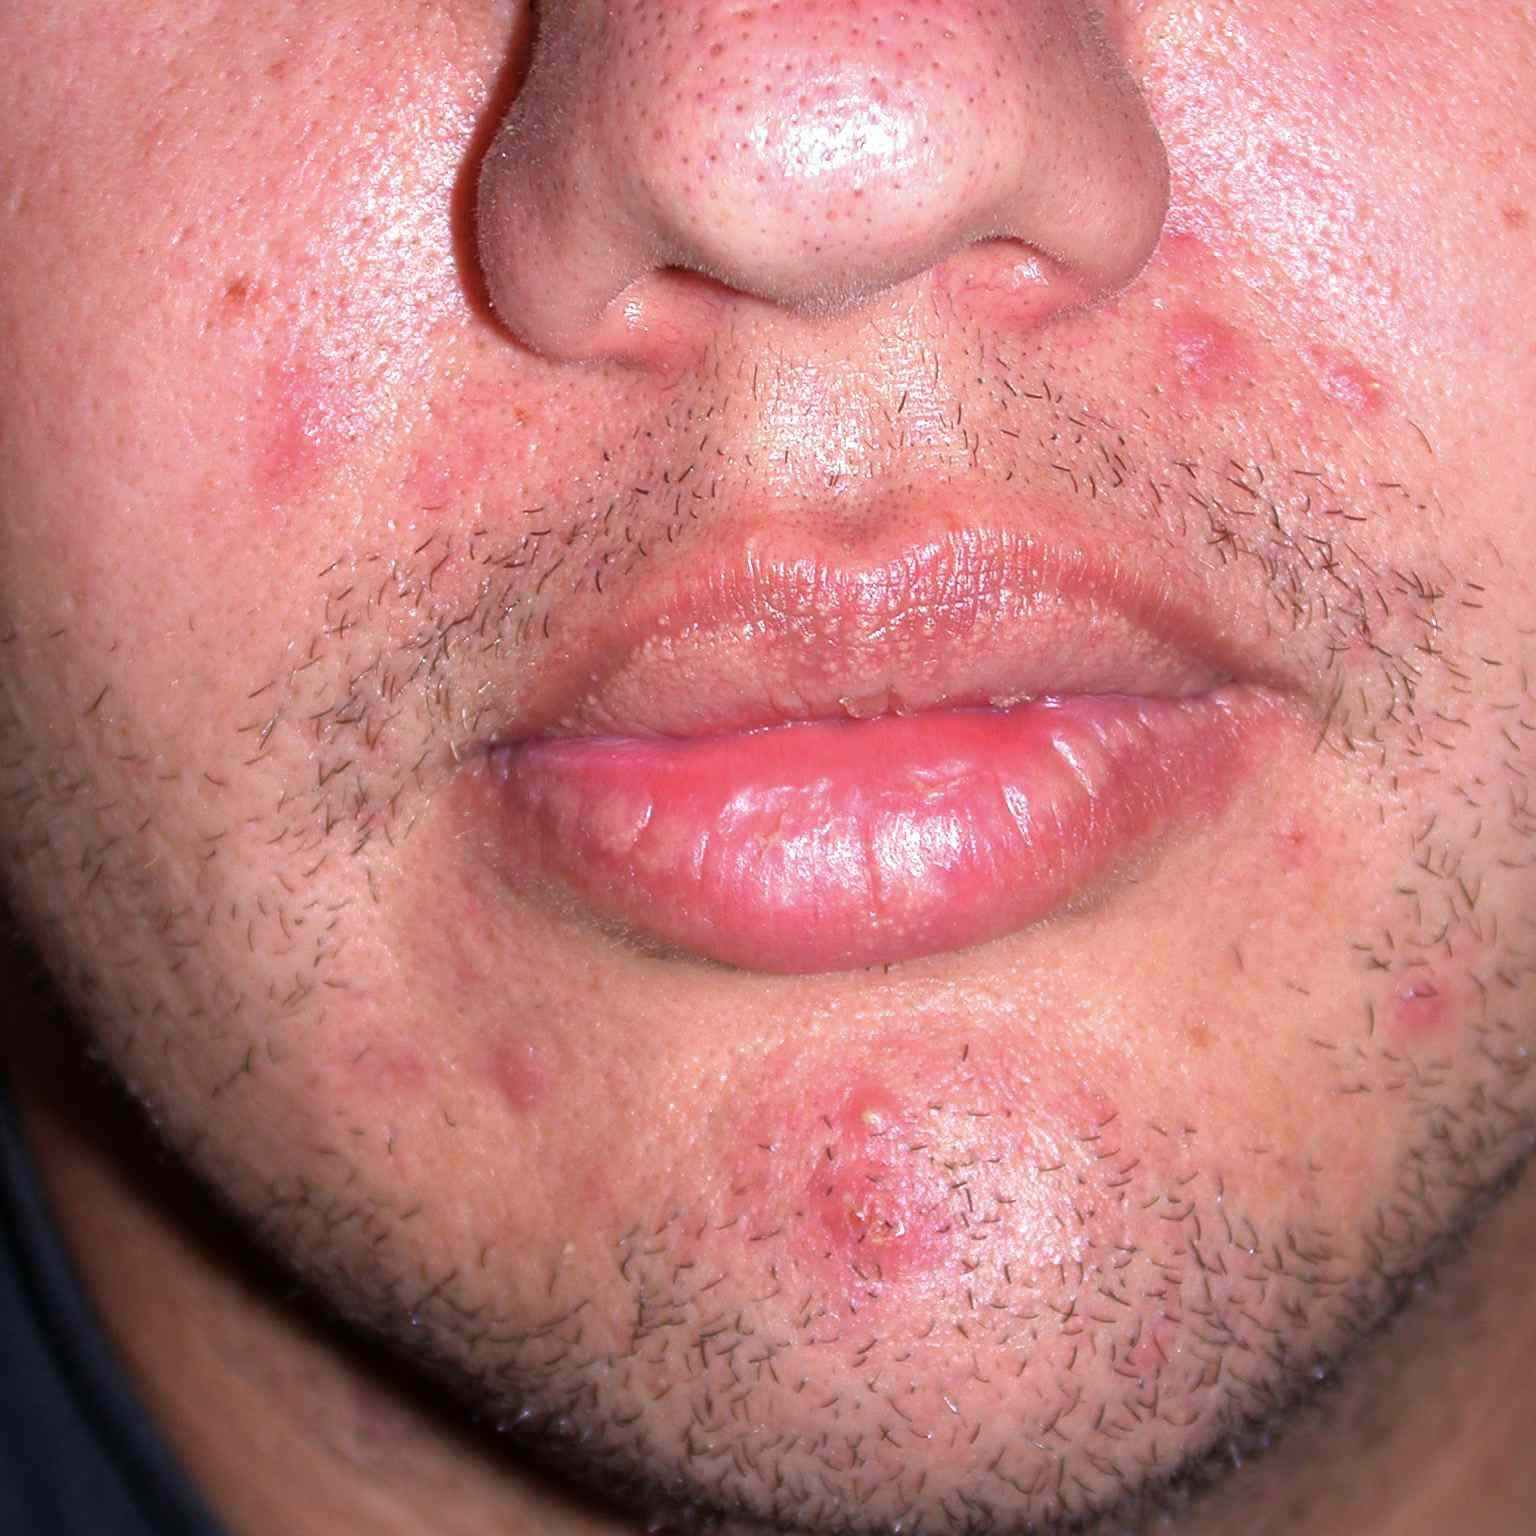 Treating Acne In Adult Males